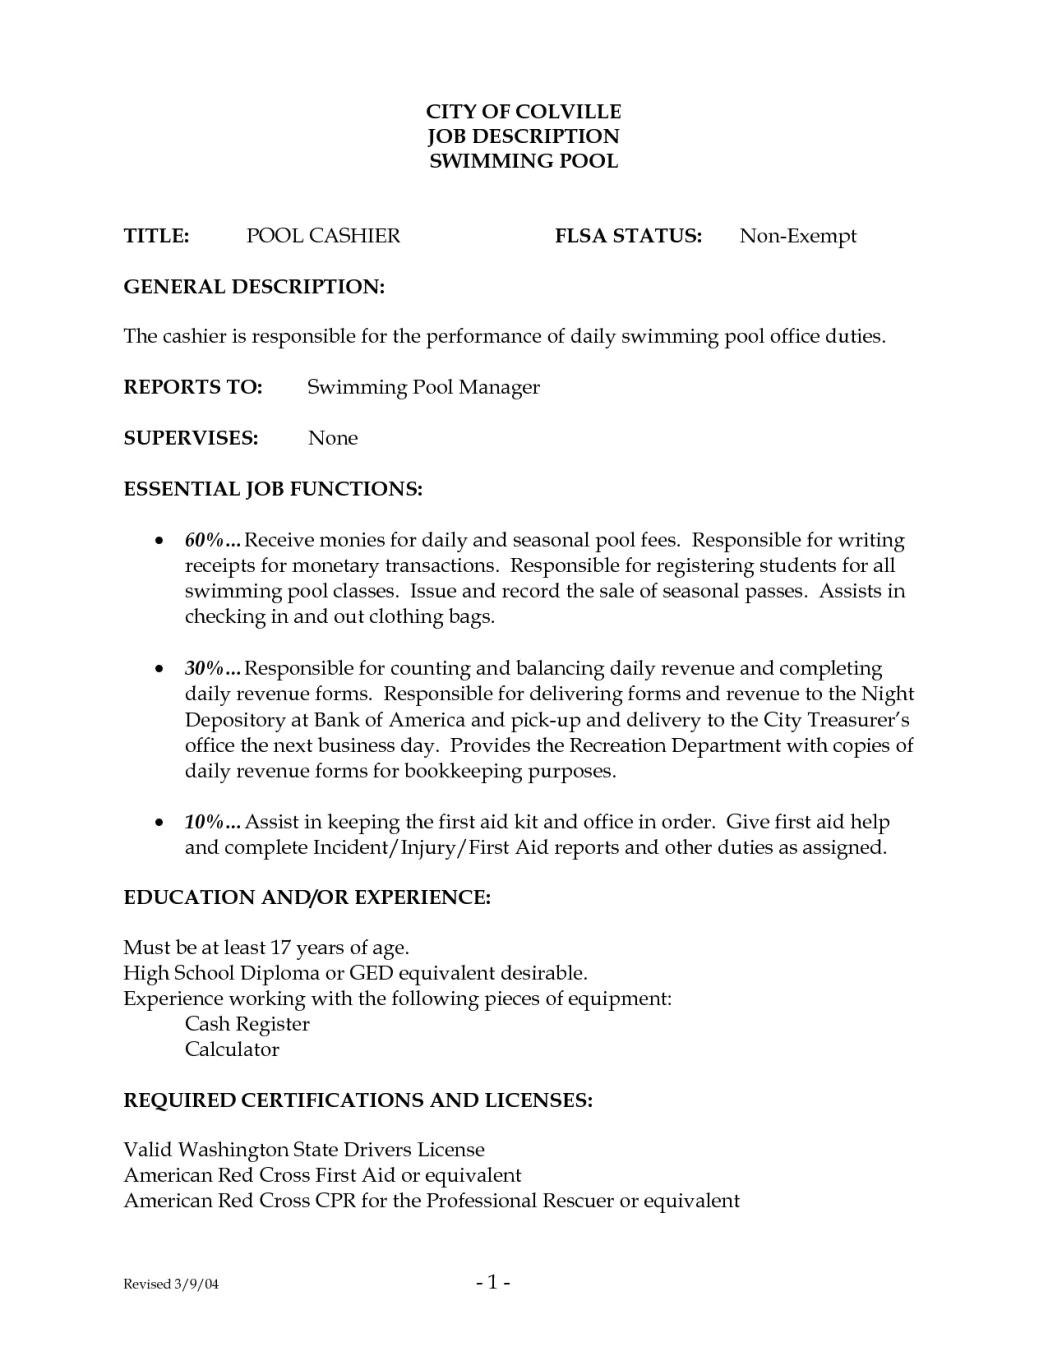 Sample Resume for Subway Sandwich Artist Subway Sandwich Artist Resume Sample Perfect Resume format